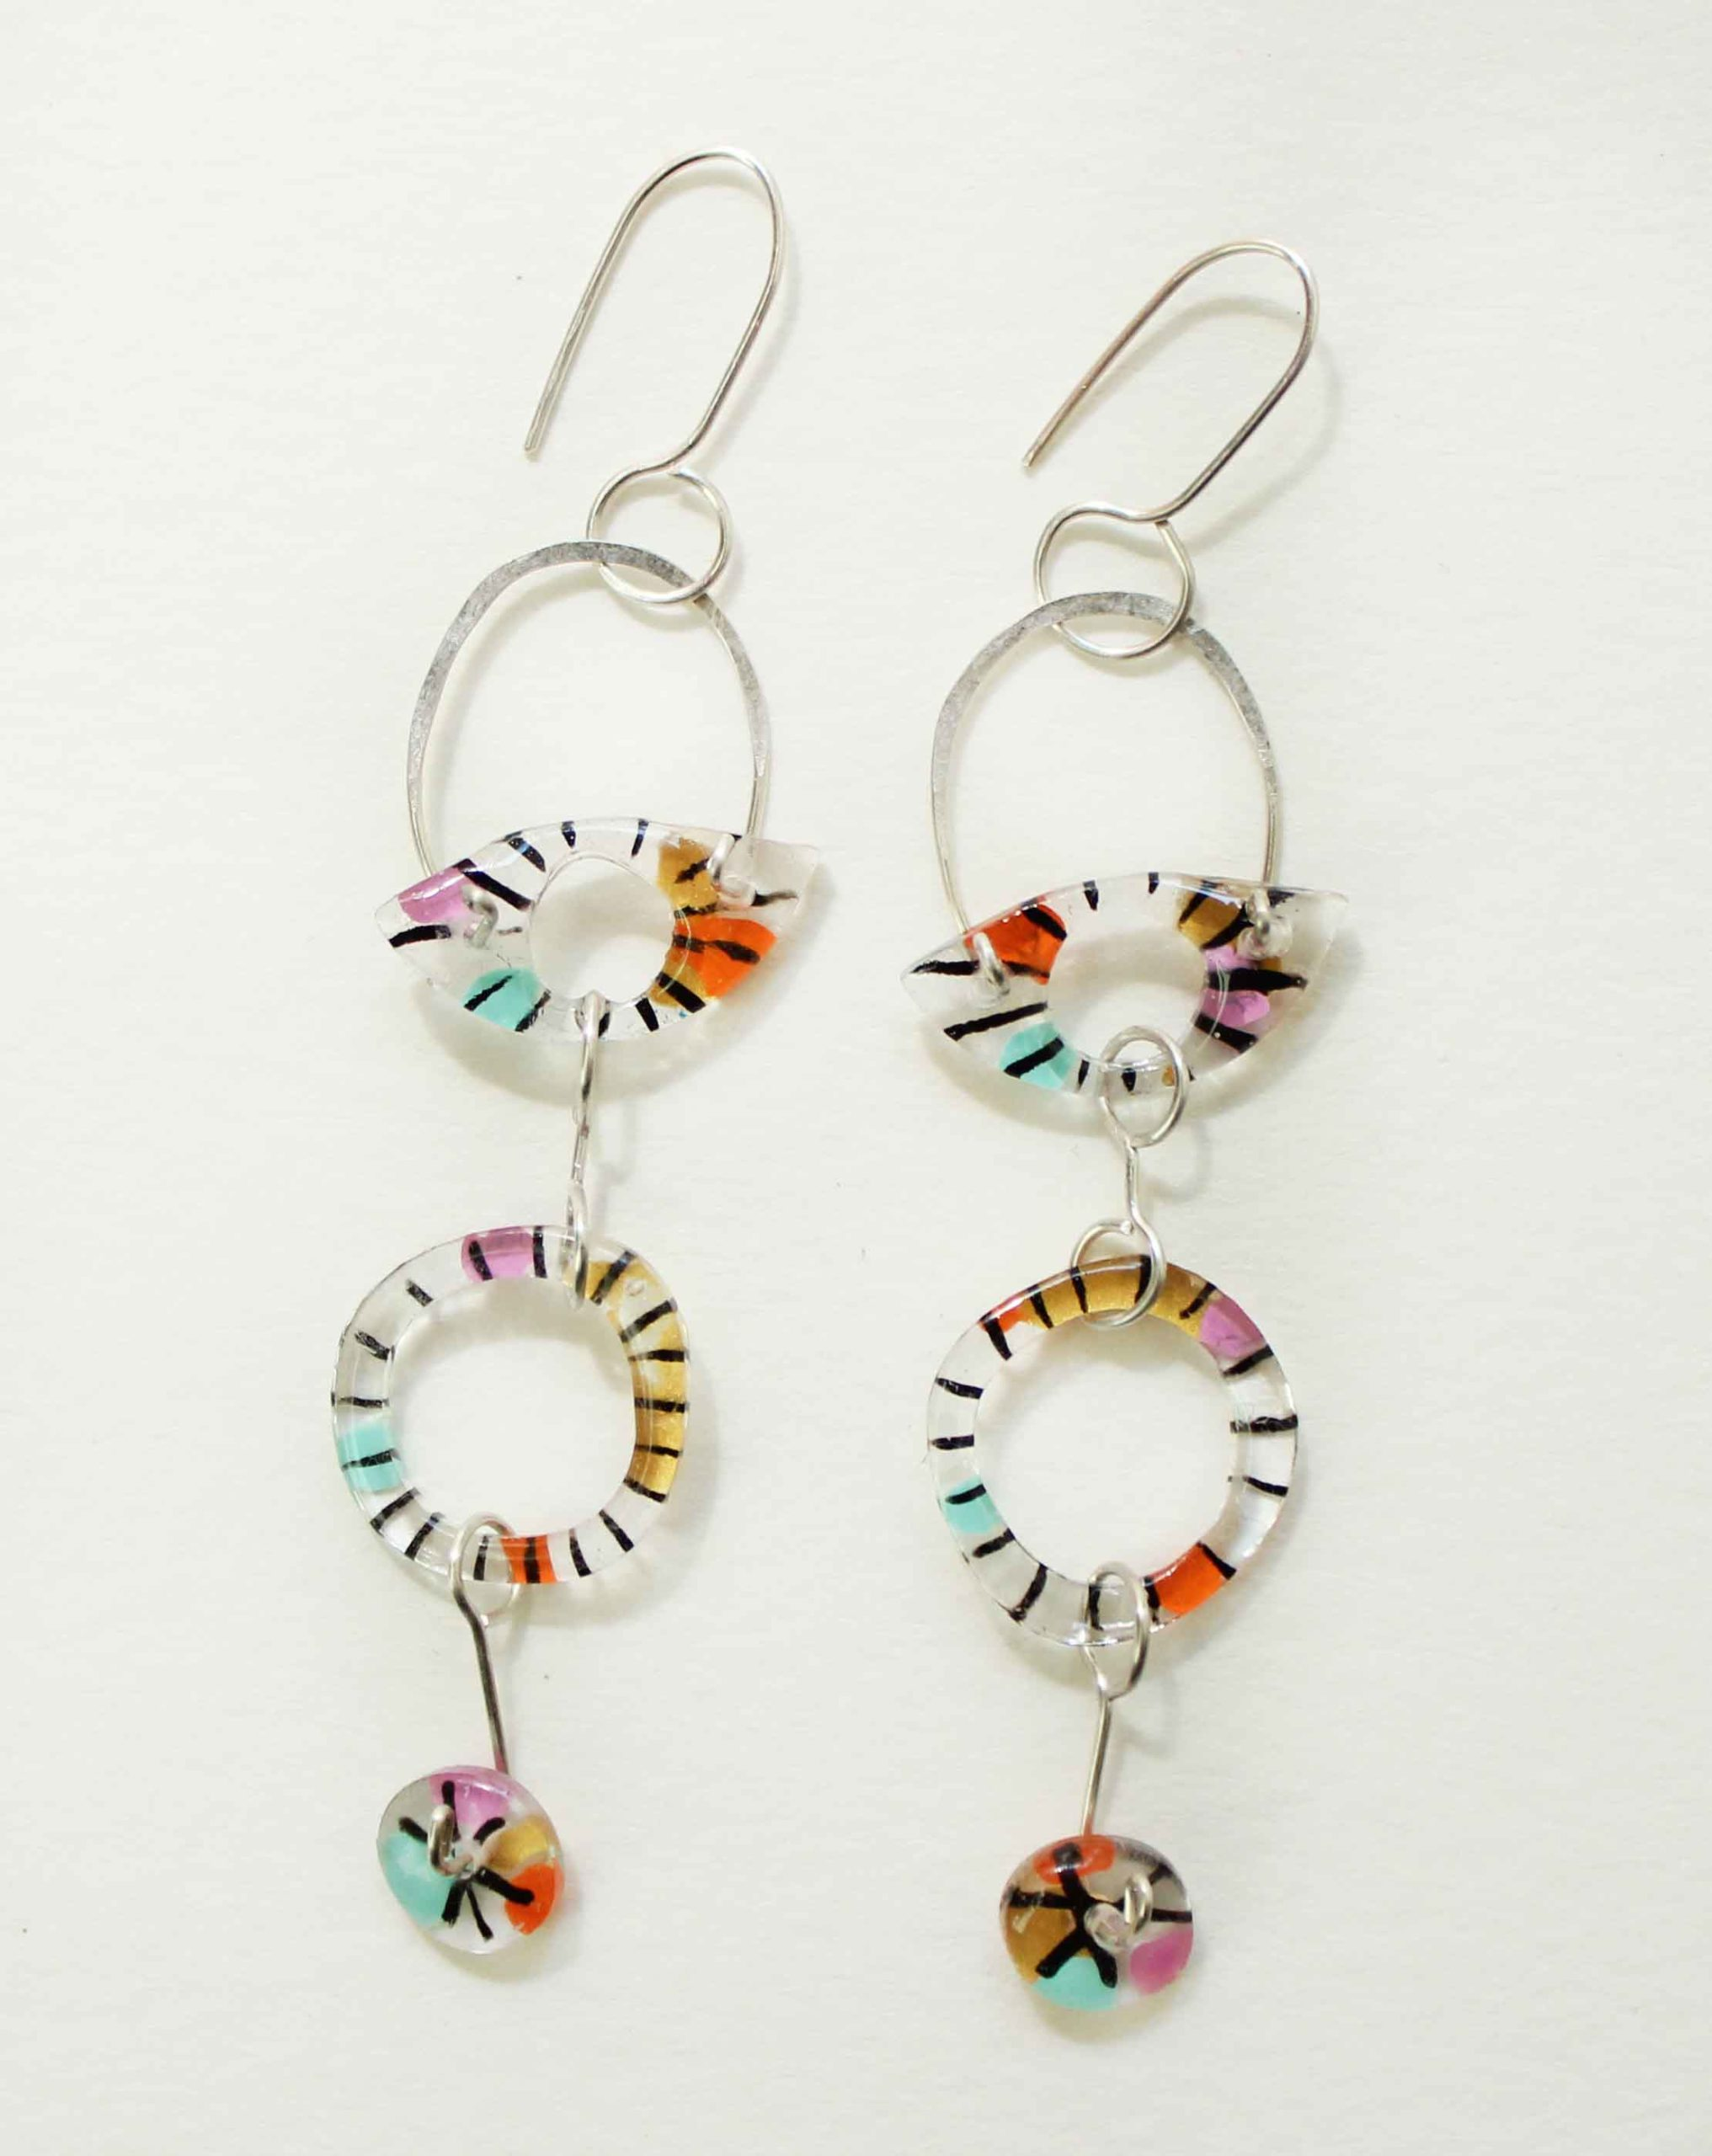 """Neely Goniodsky Long Clear Eyes, 2020 Acrylic, resin and sterling silver  3 ½"""" long"""